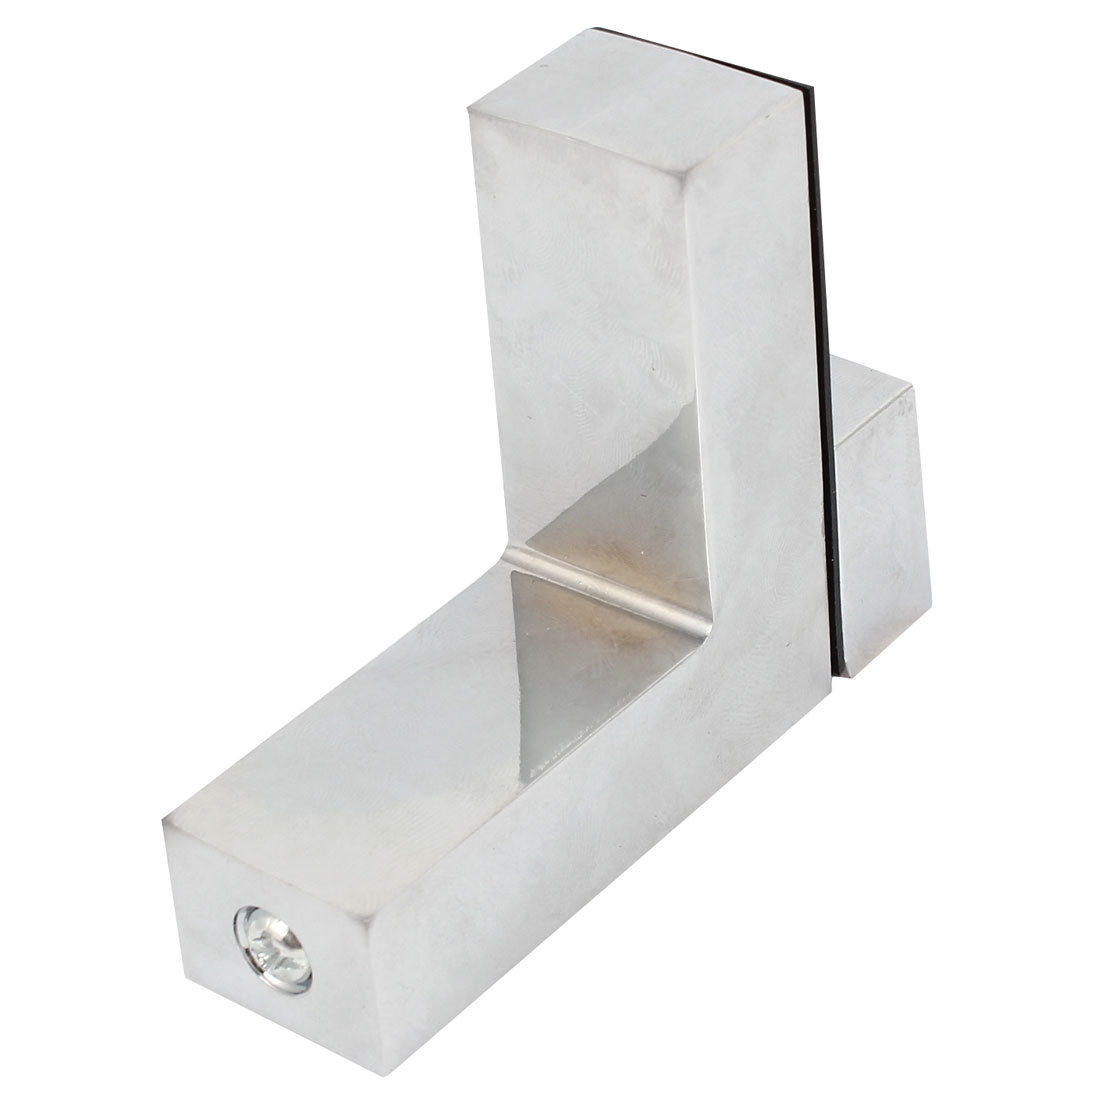 Home Cabinet Adjustable Shelf Bracket Support Holder for Glass Wood Board